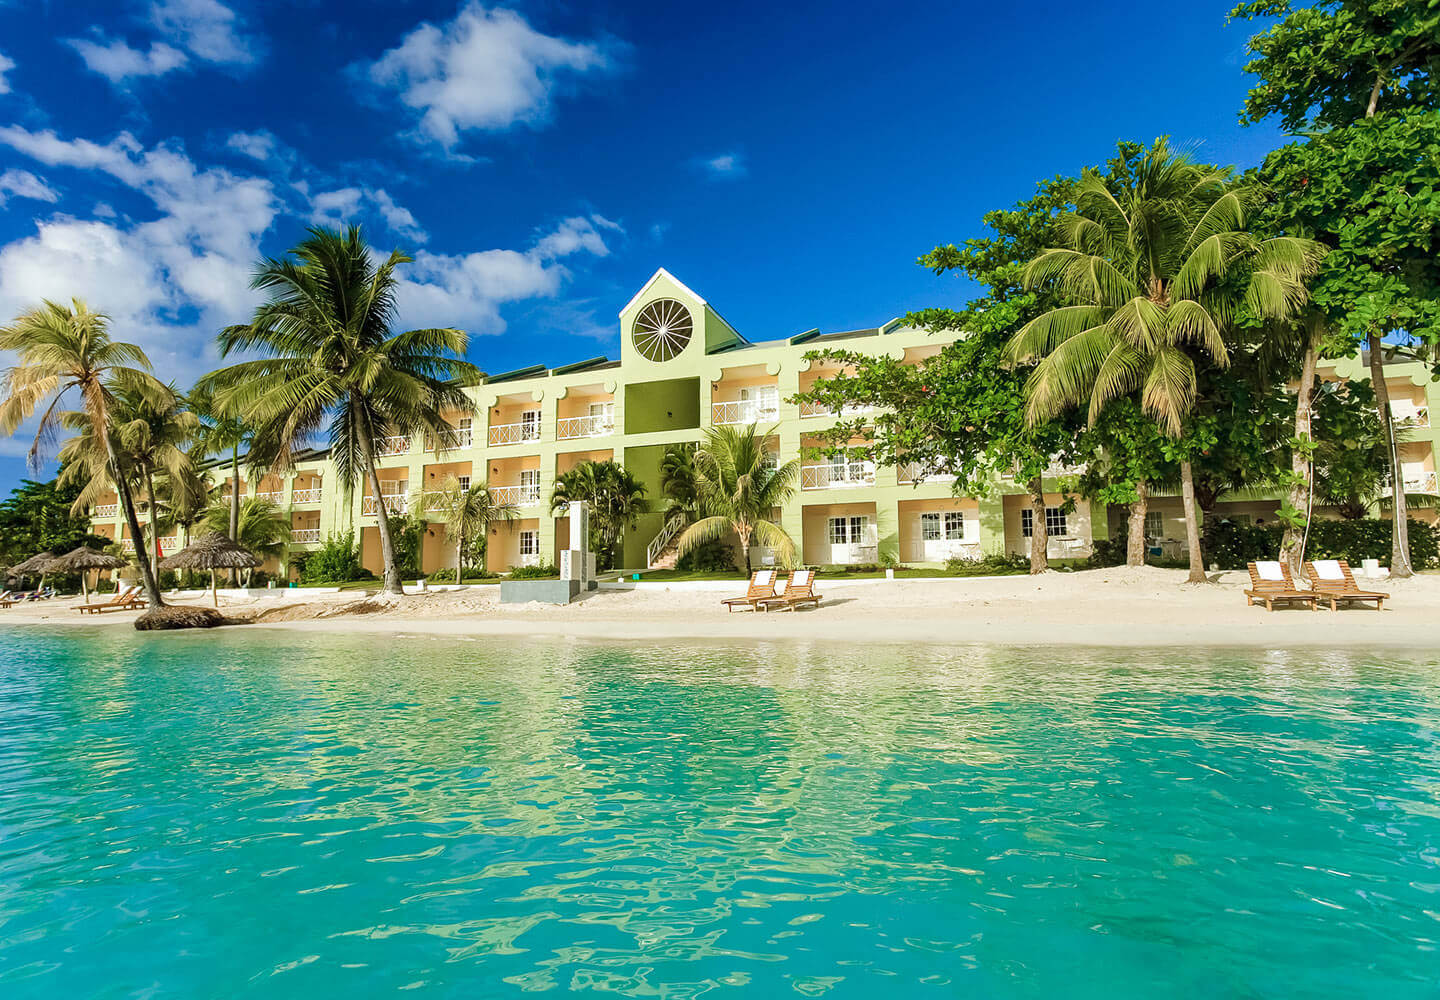 Sandals Negril - All Inclusive Vacations